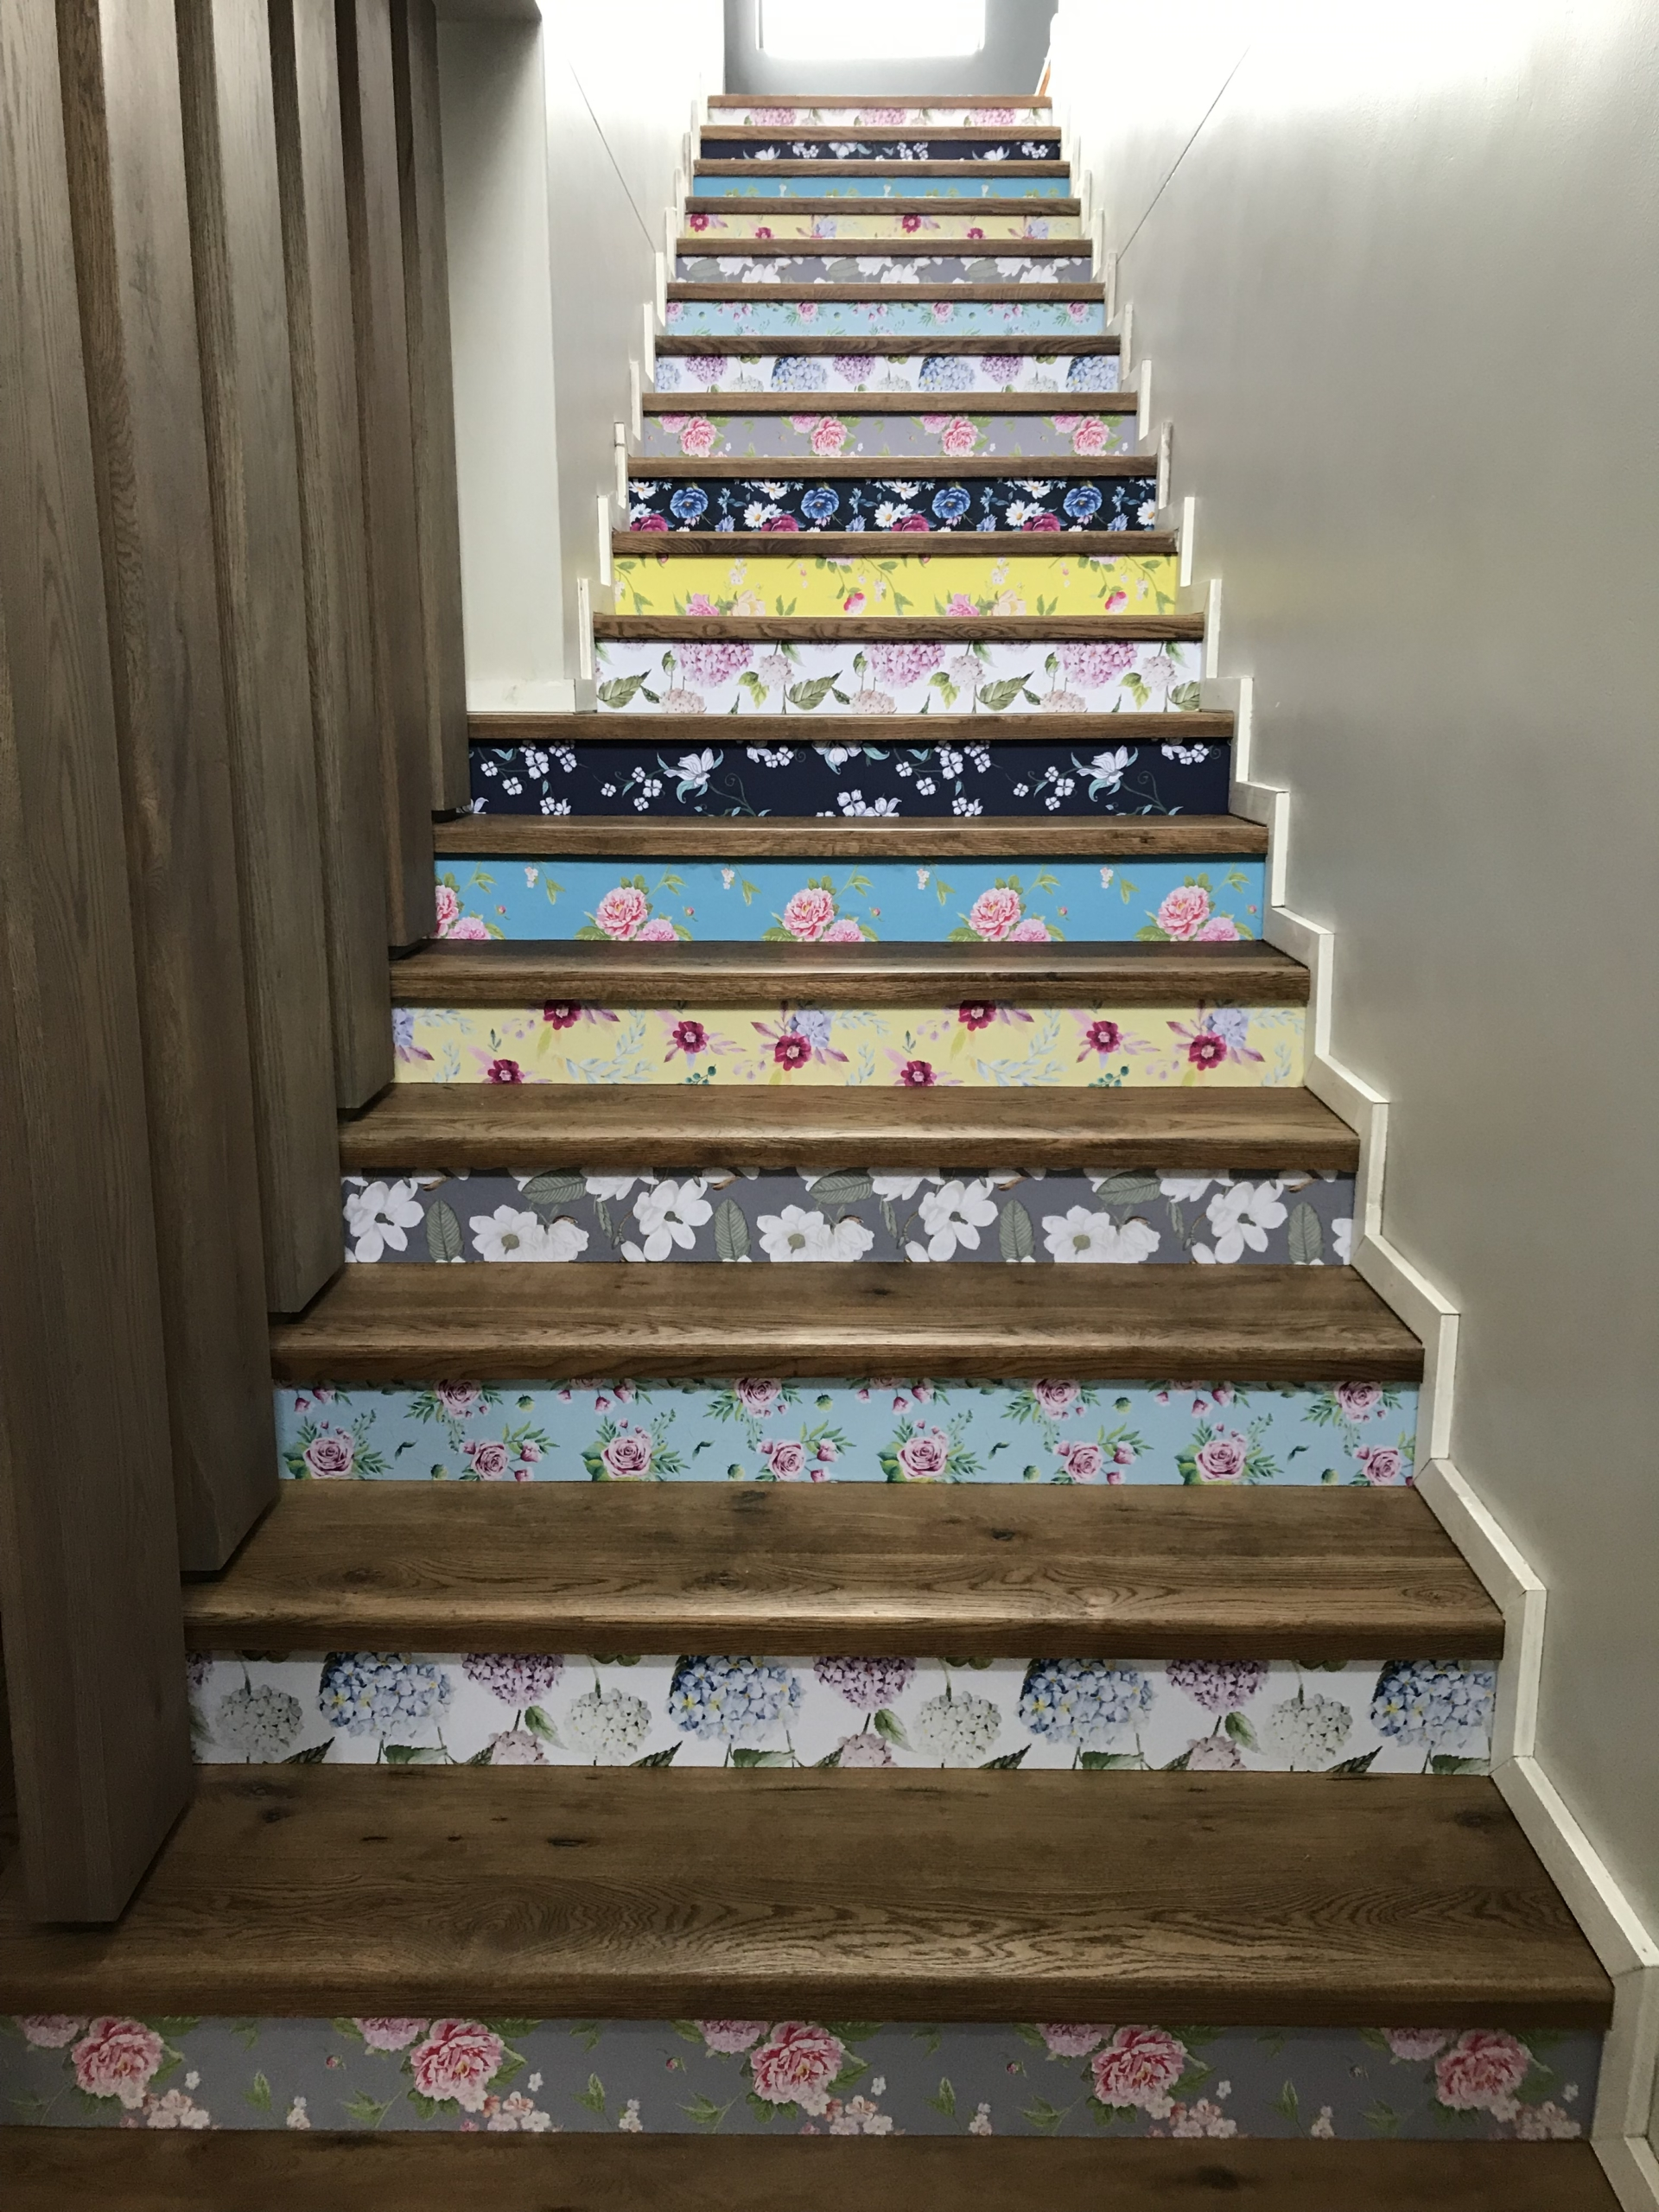 Refreshed Designs- Feature staircase at entrance